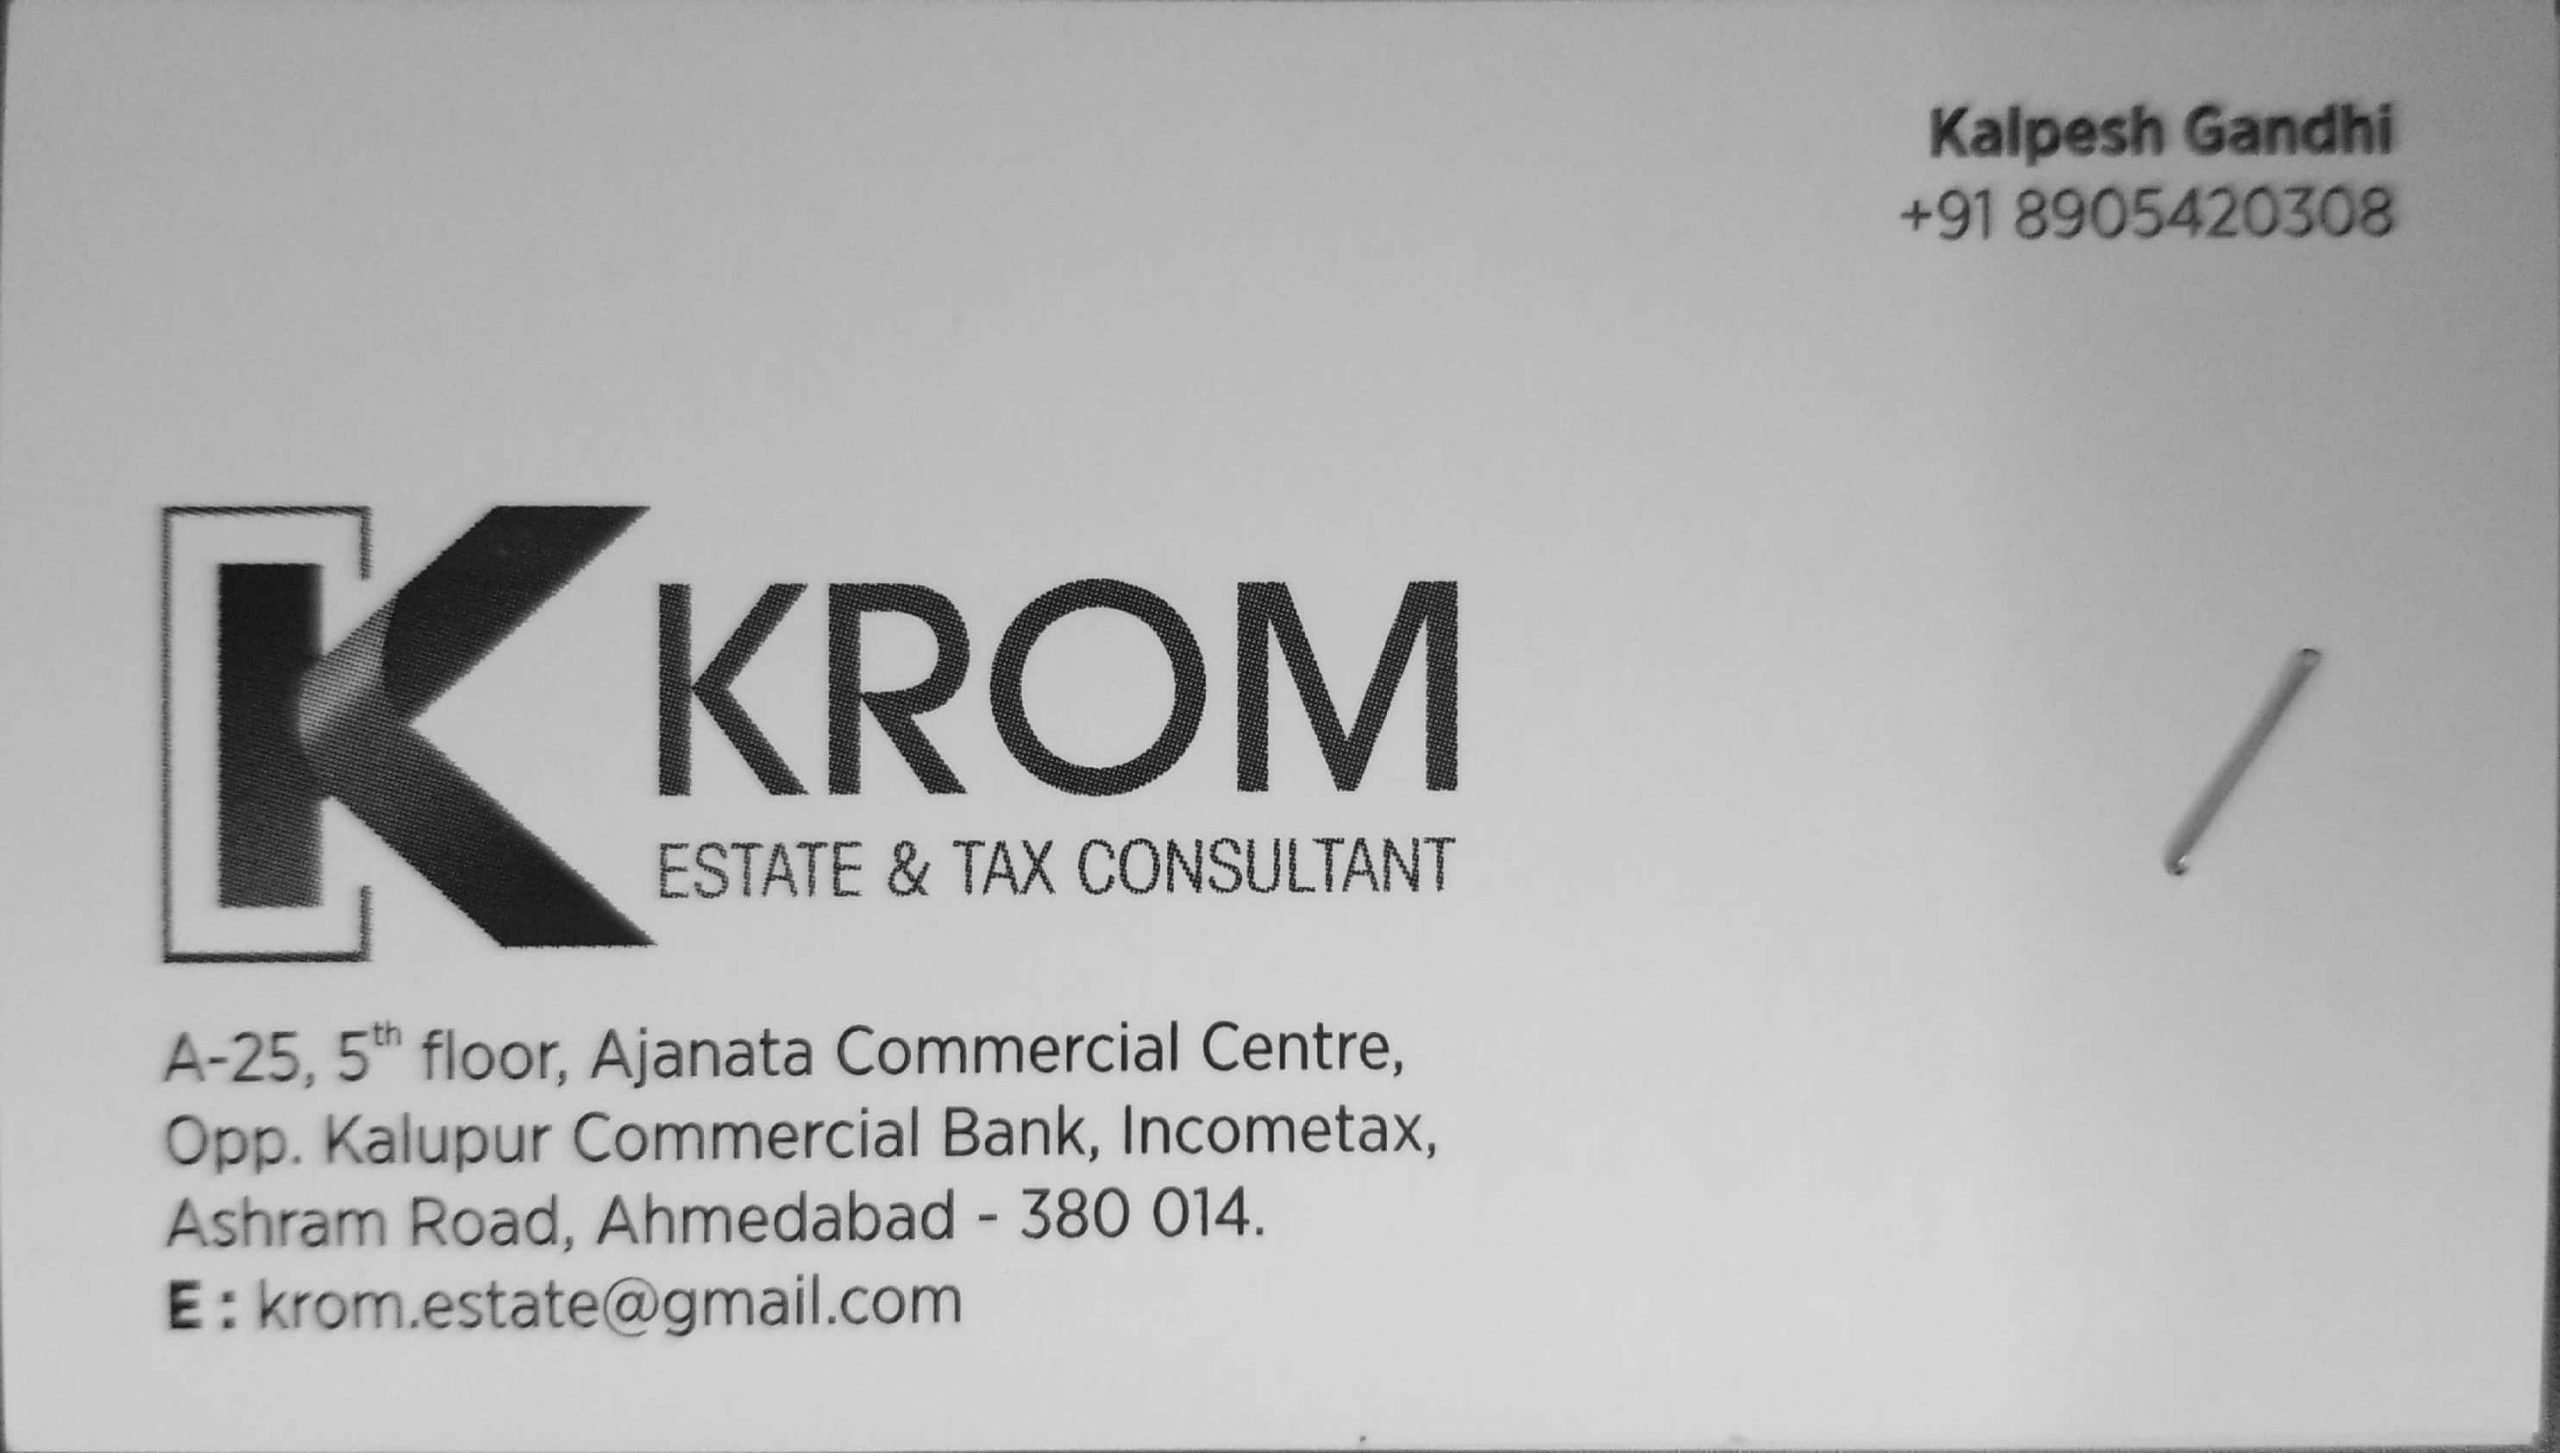 Krom Estate & Tax Consultant